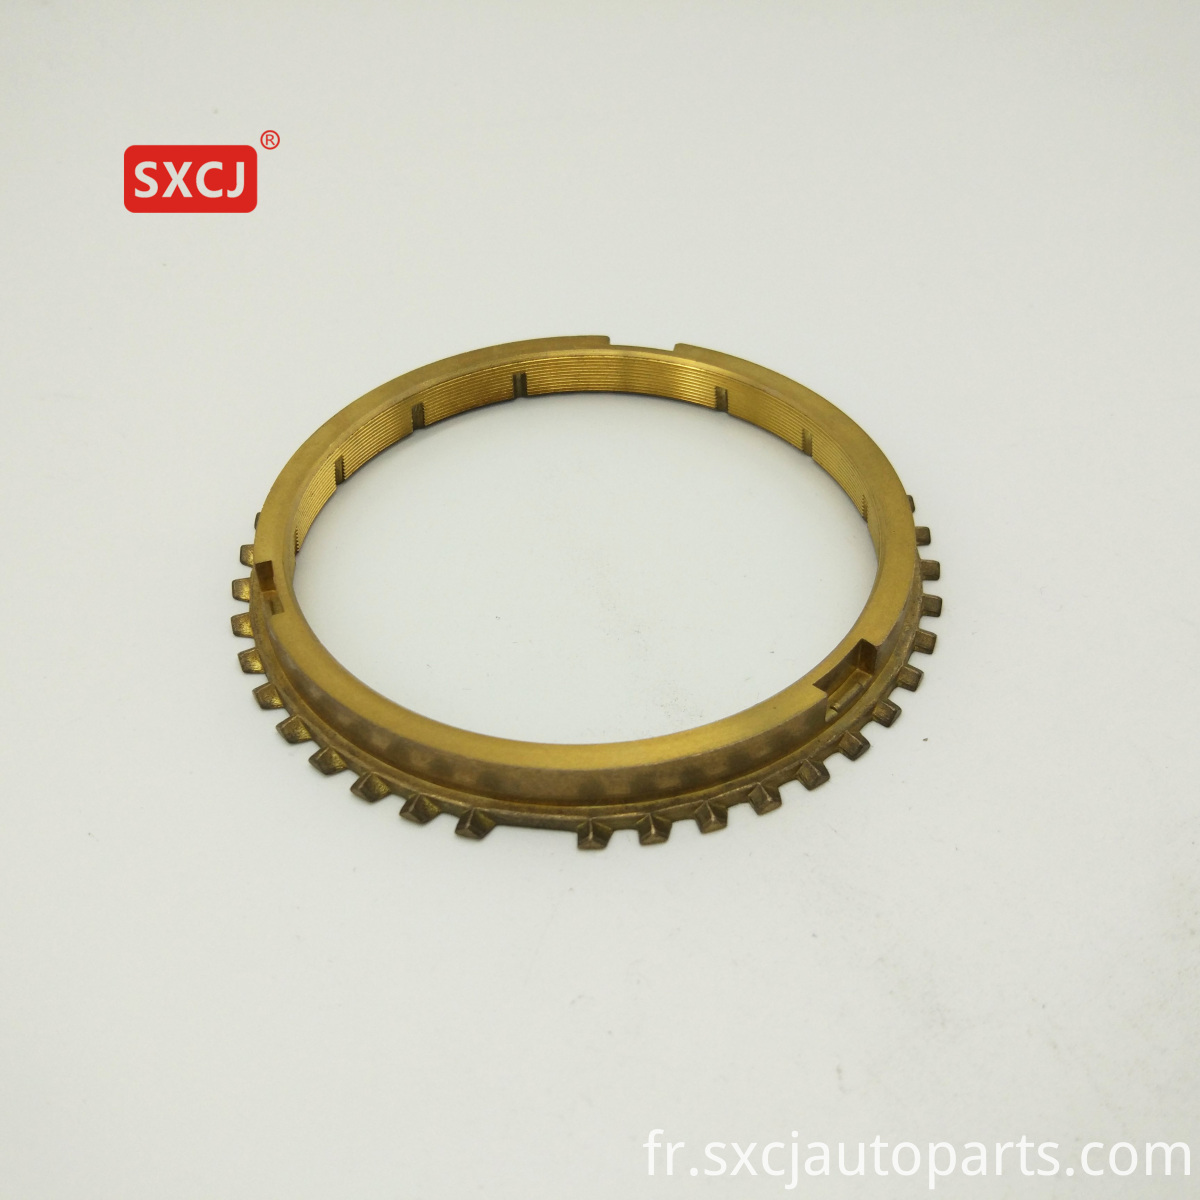 OEM Transmission Gear Part